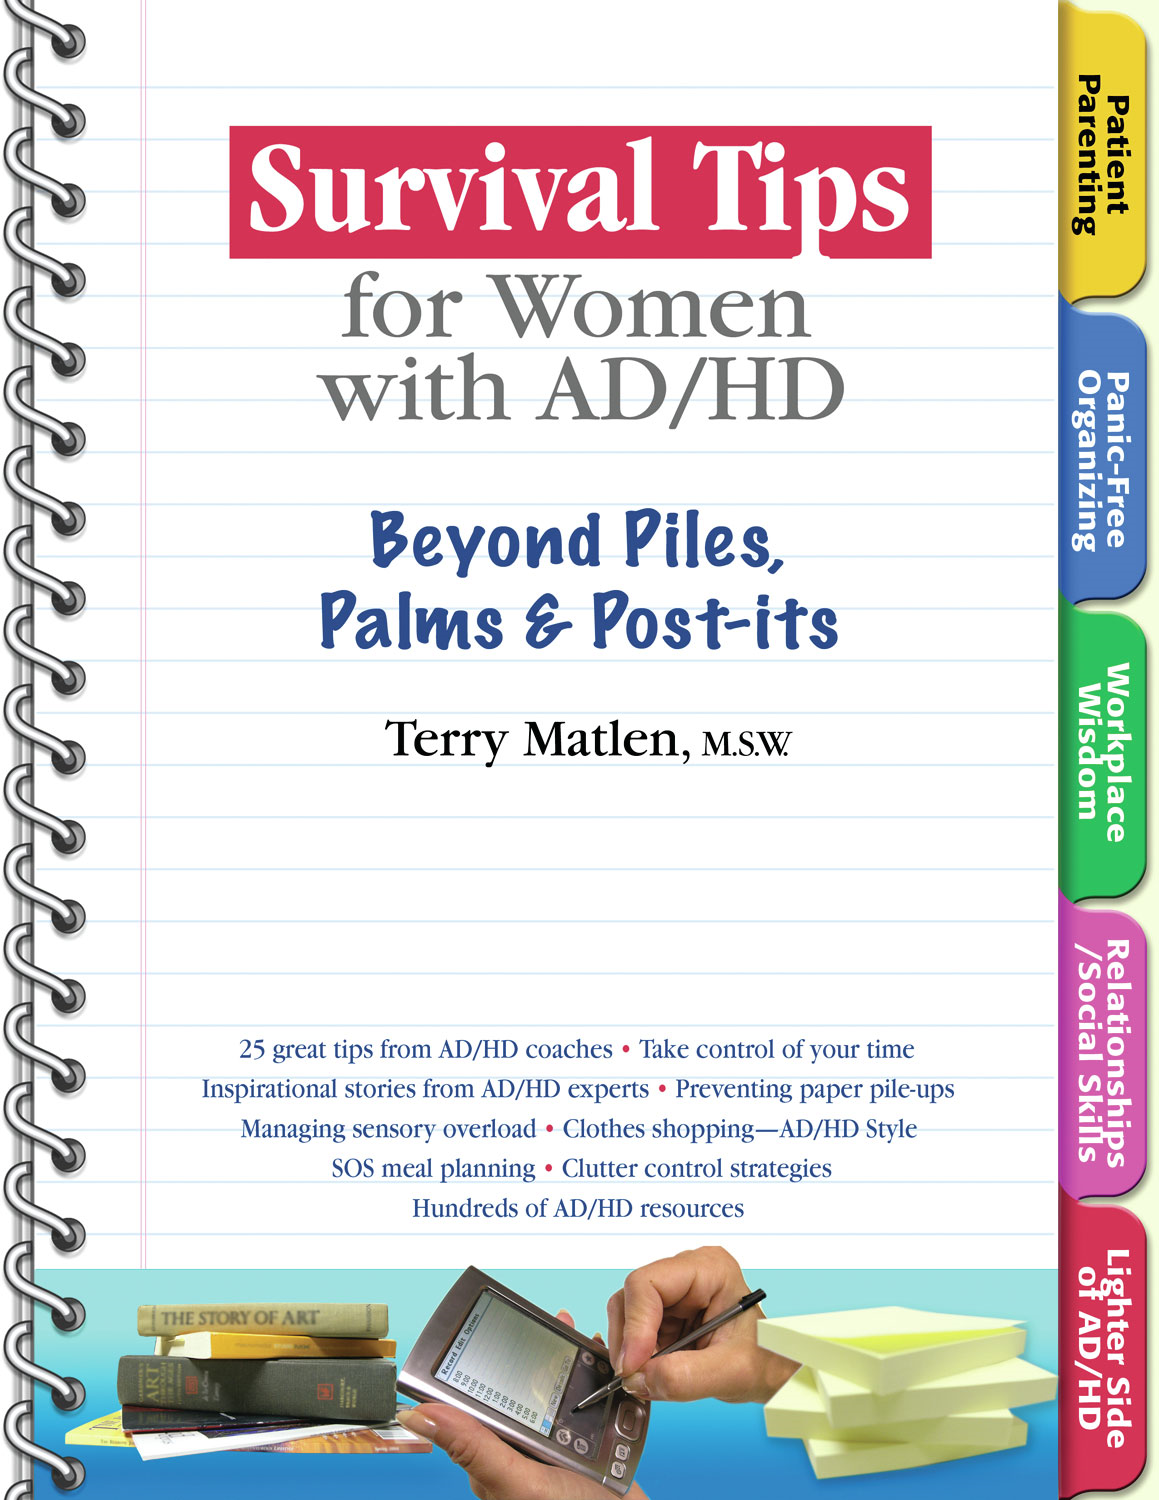 Survival Tips for Women with AD/HD: Beyond Piles, Palms, & Post-its